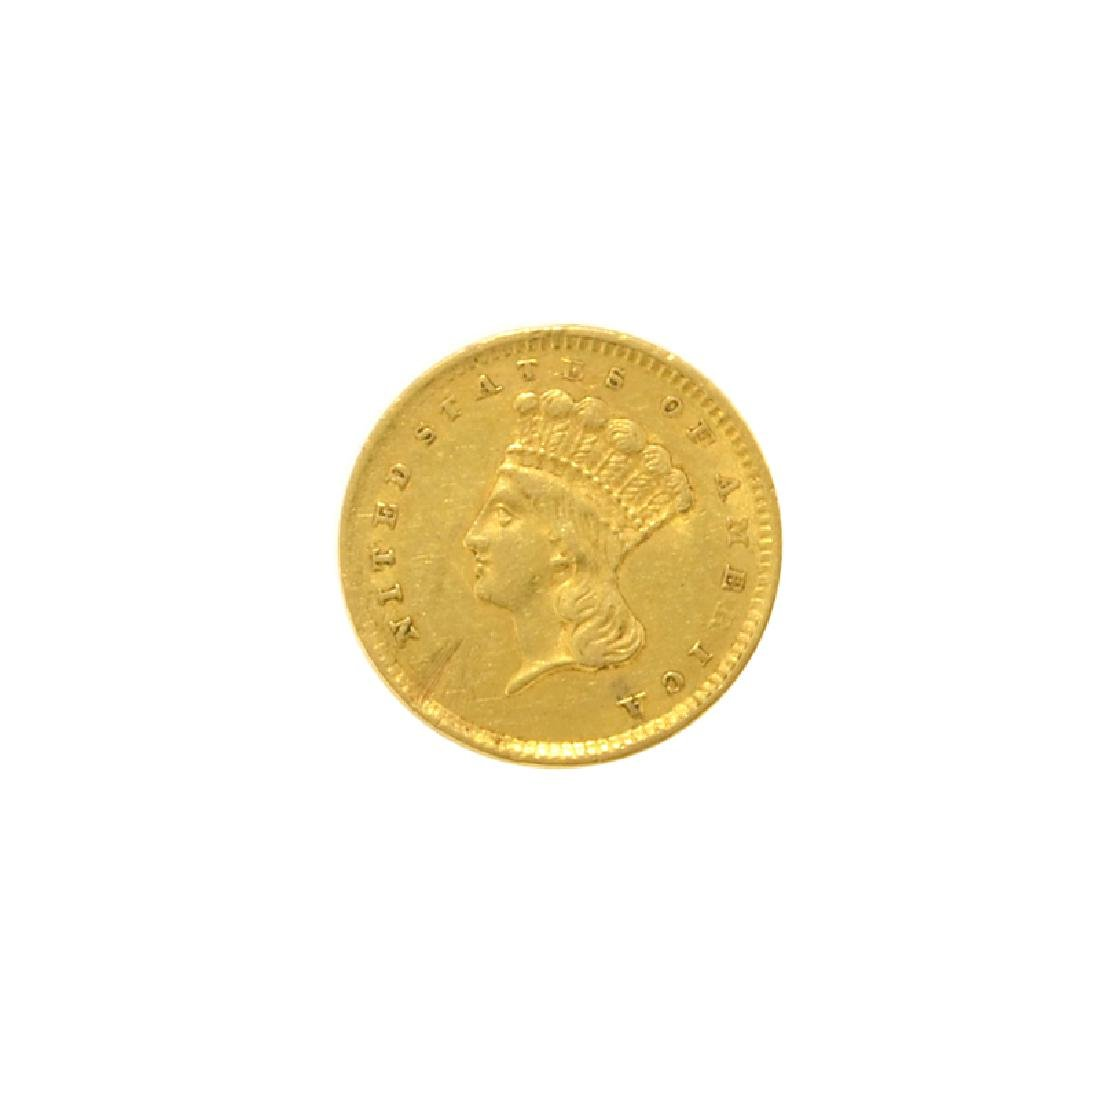 1856 $1 U.S. Indian Head Gold Coin